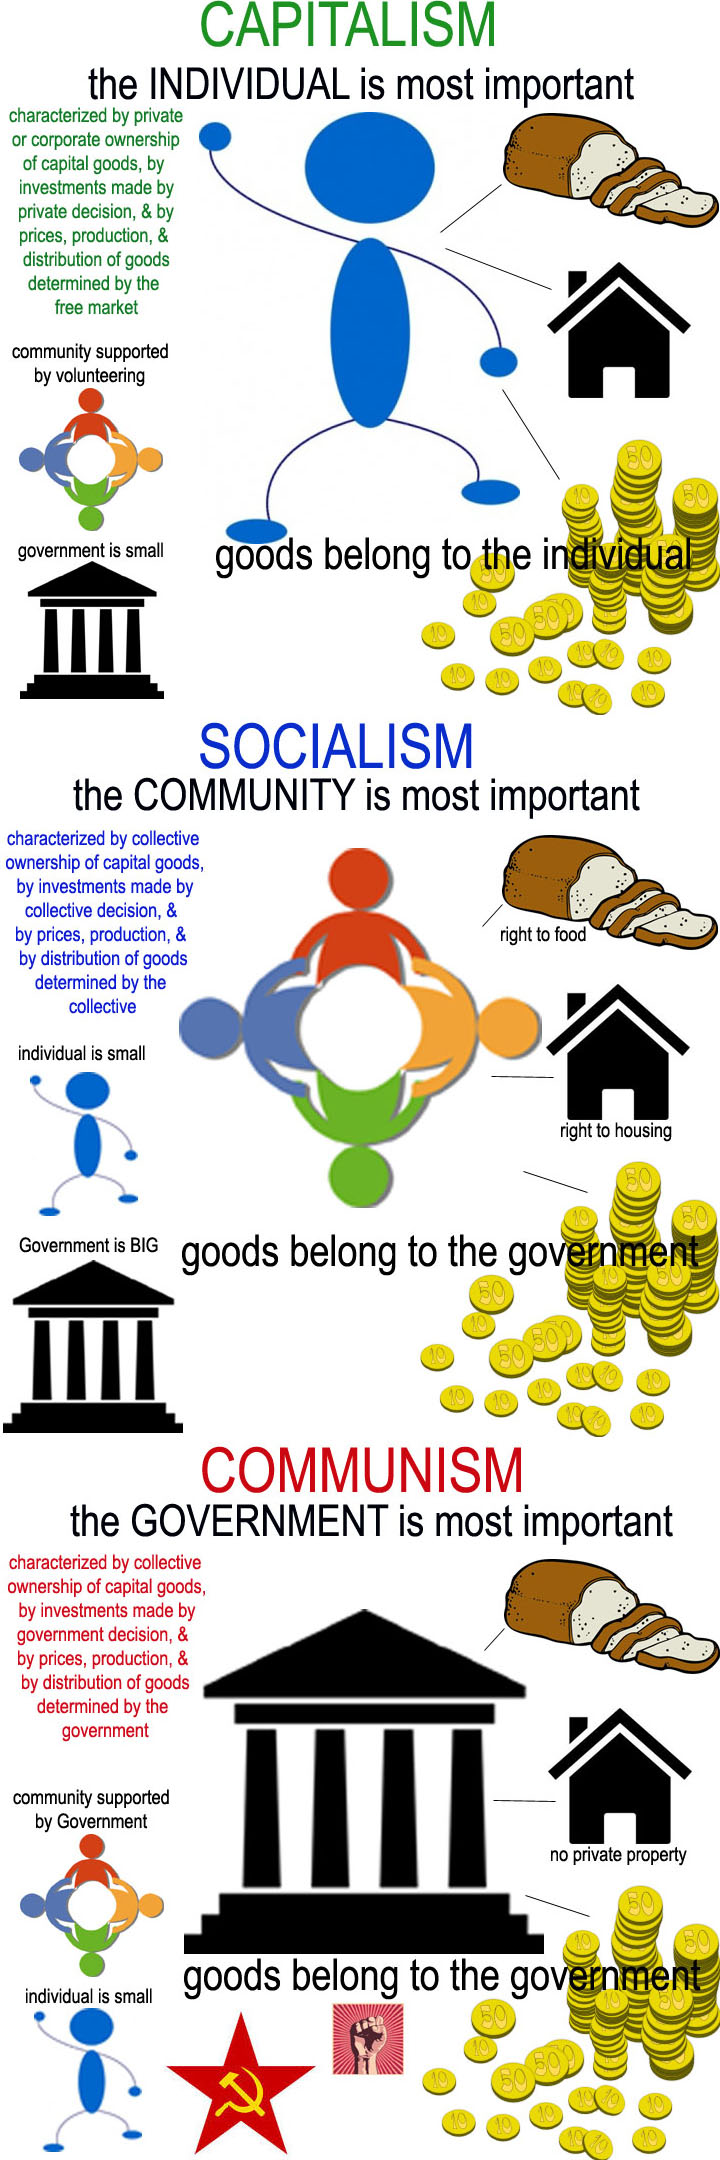 socialism and capitalism venn diagram garage door opener parts understanding the differences between communism don t you get what bo is doing to this country worst president ever